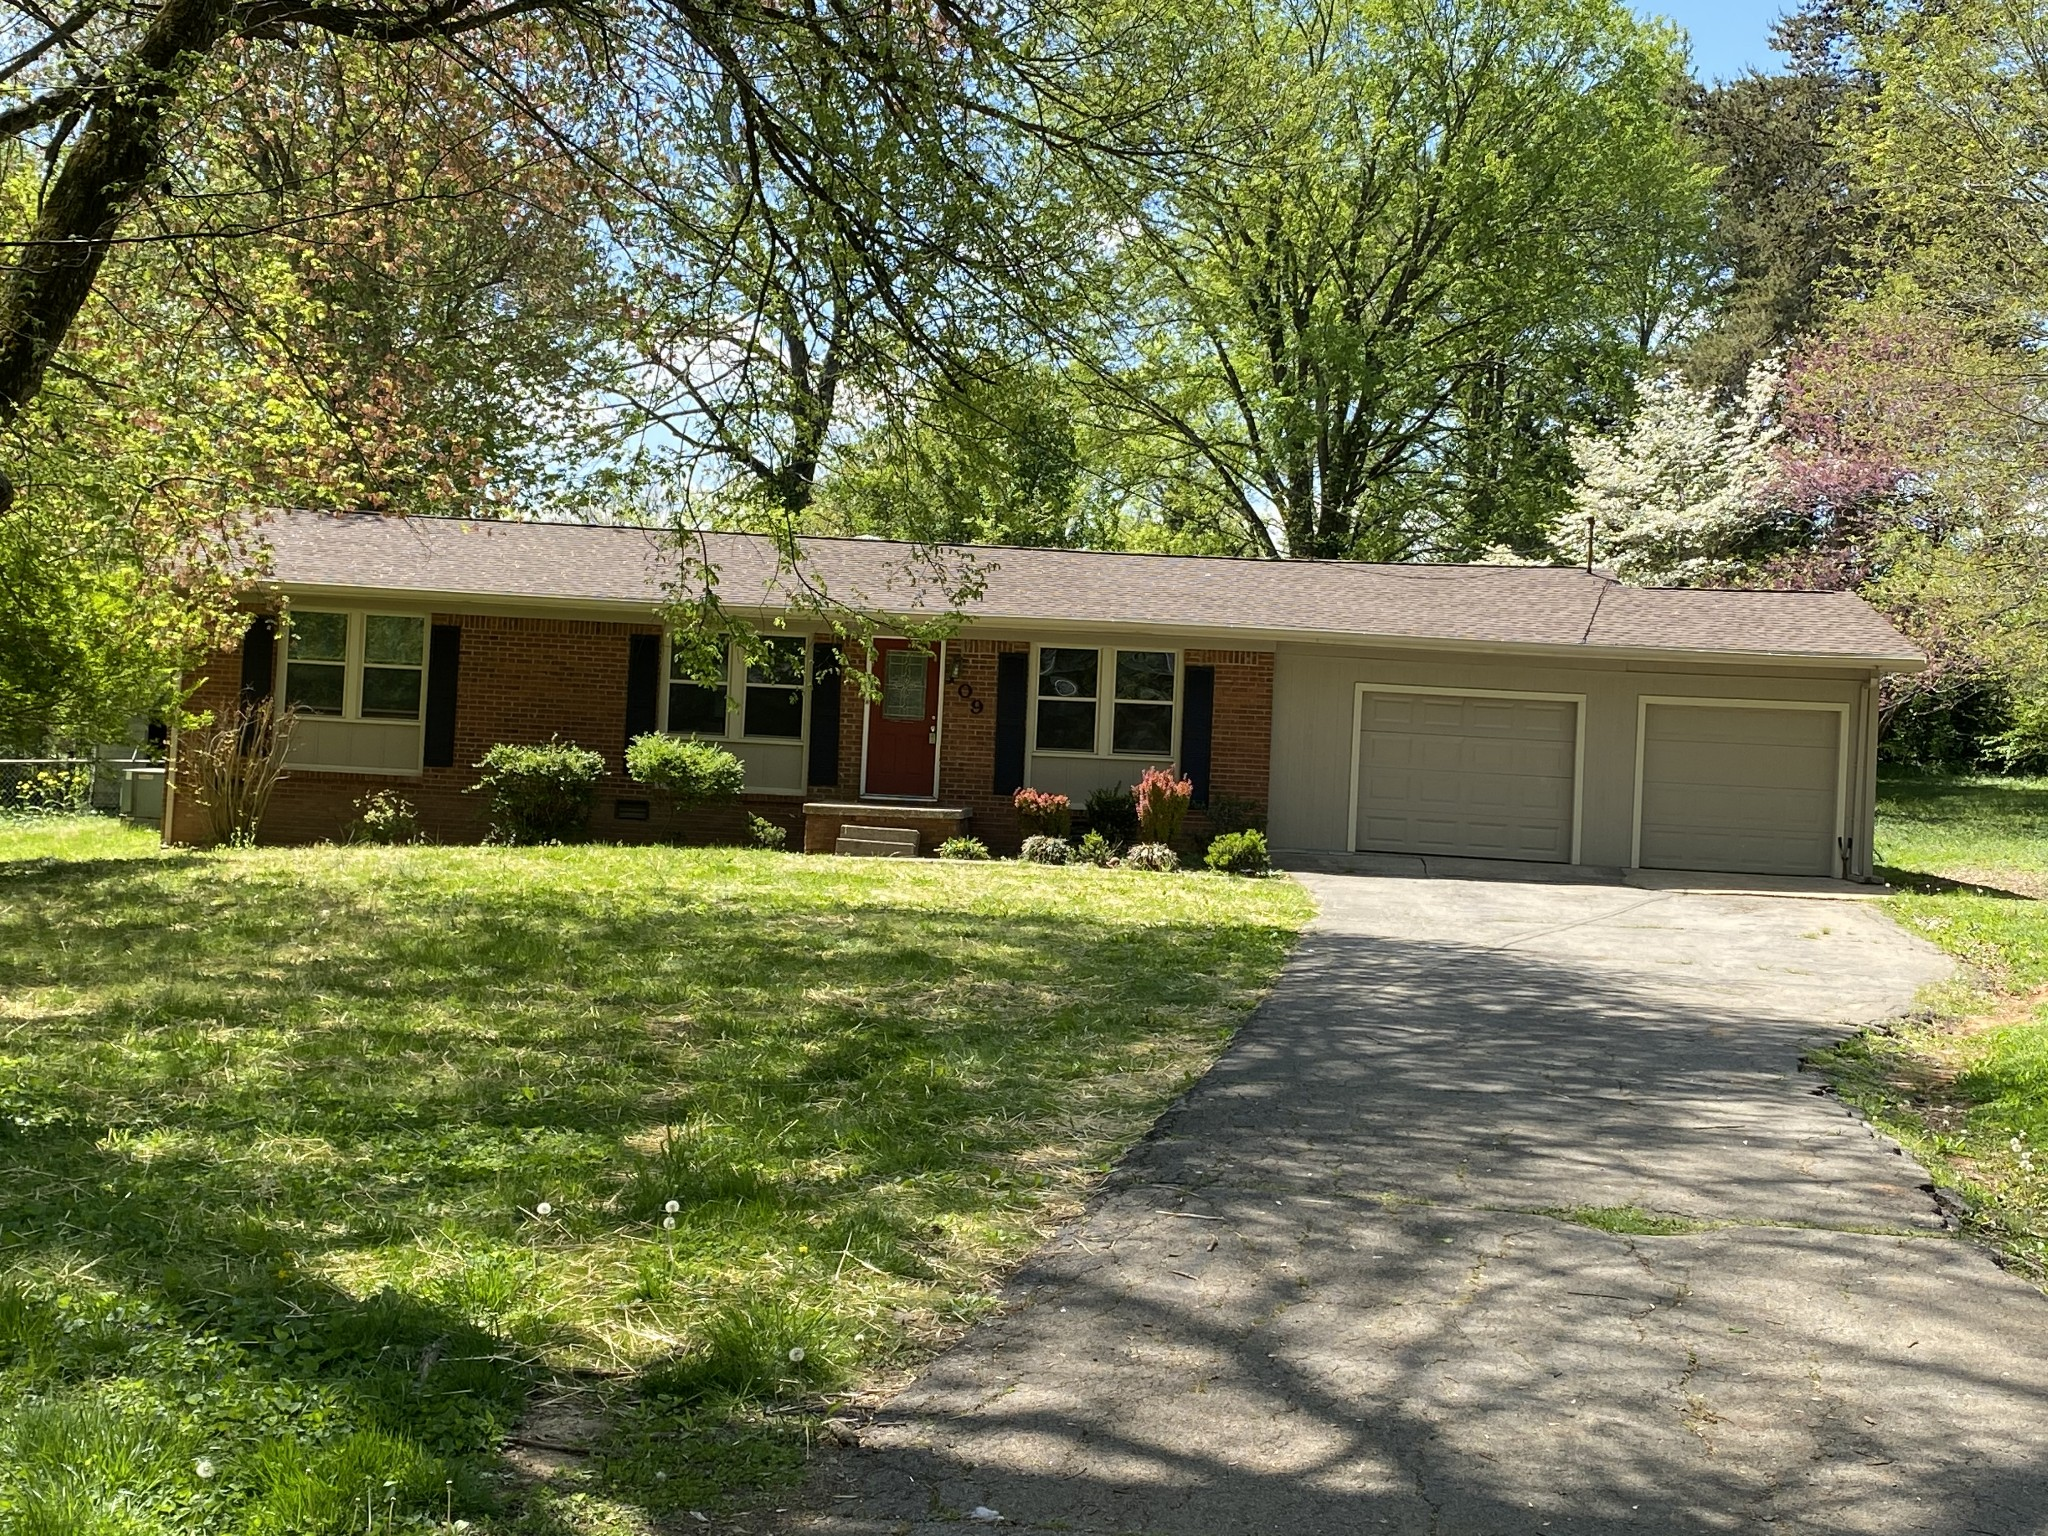 109 Winona Ct Property Photo - Hopkinsville, KY real estate listing